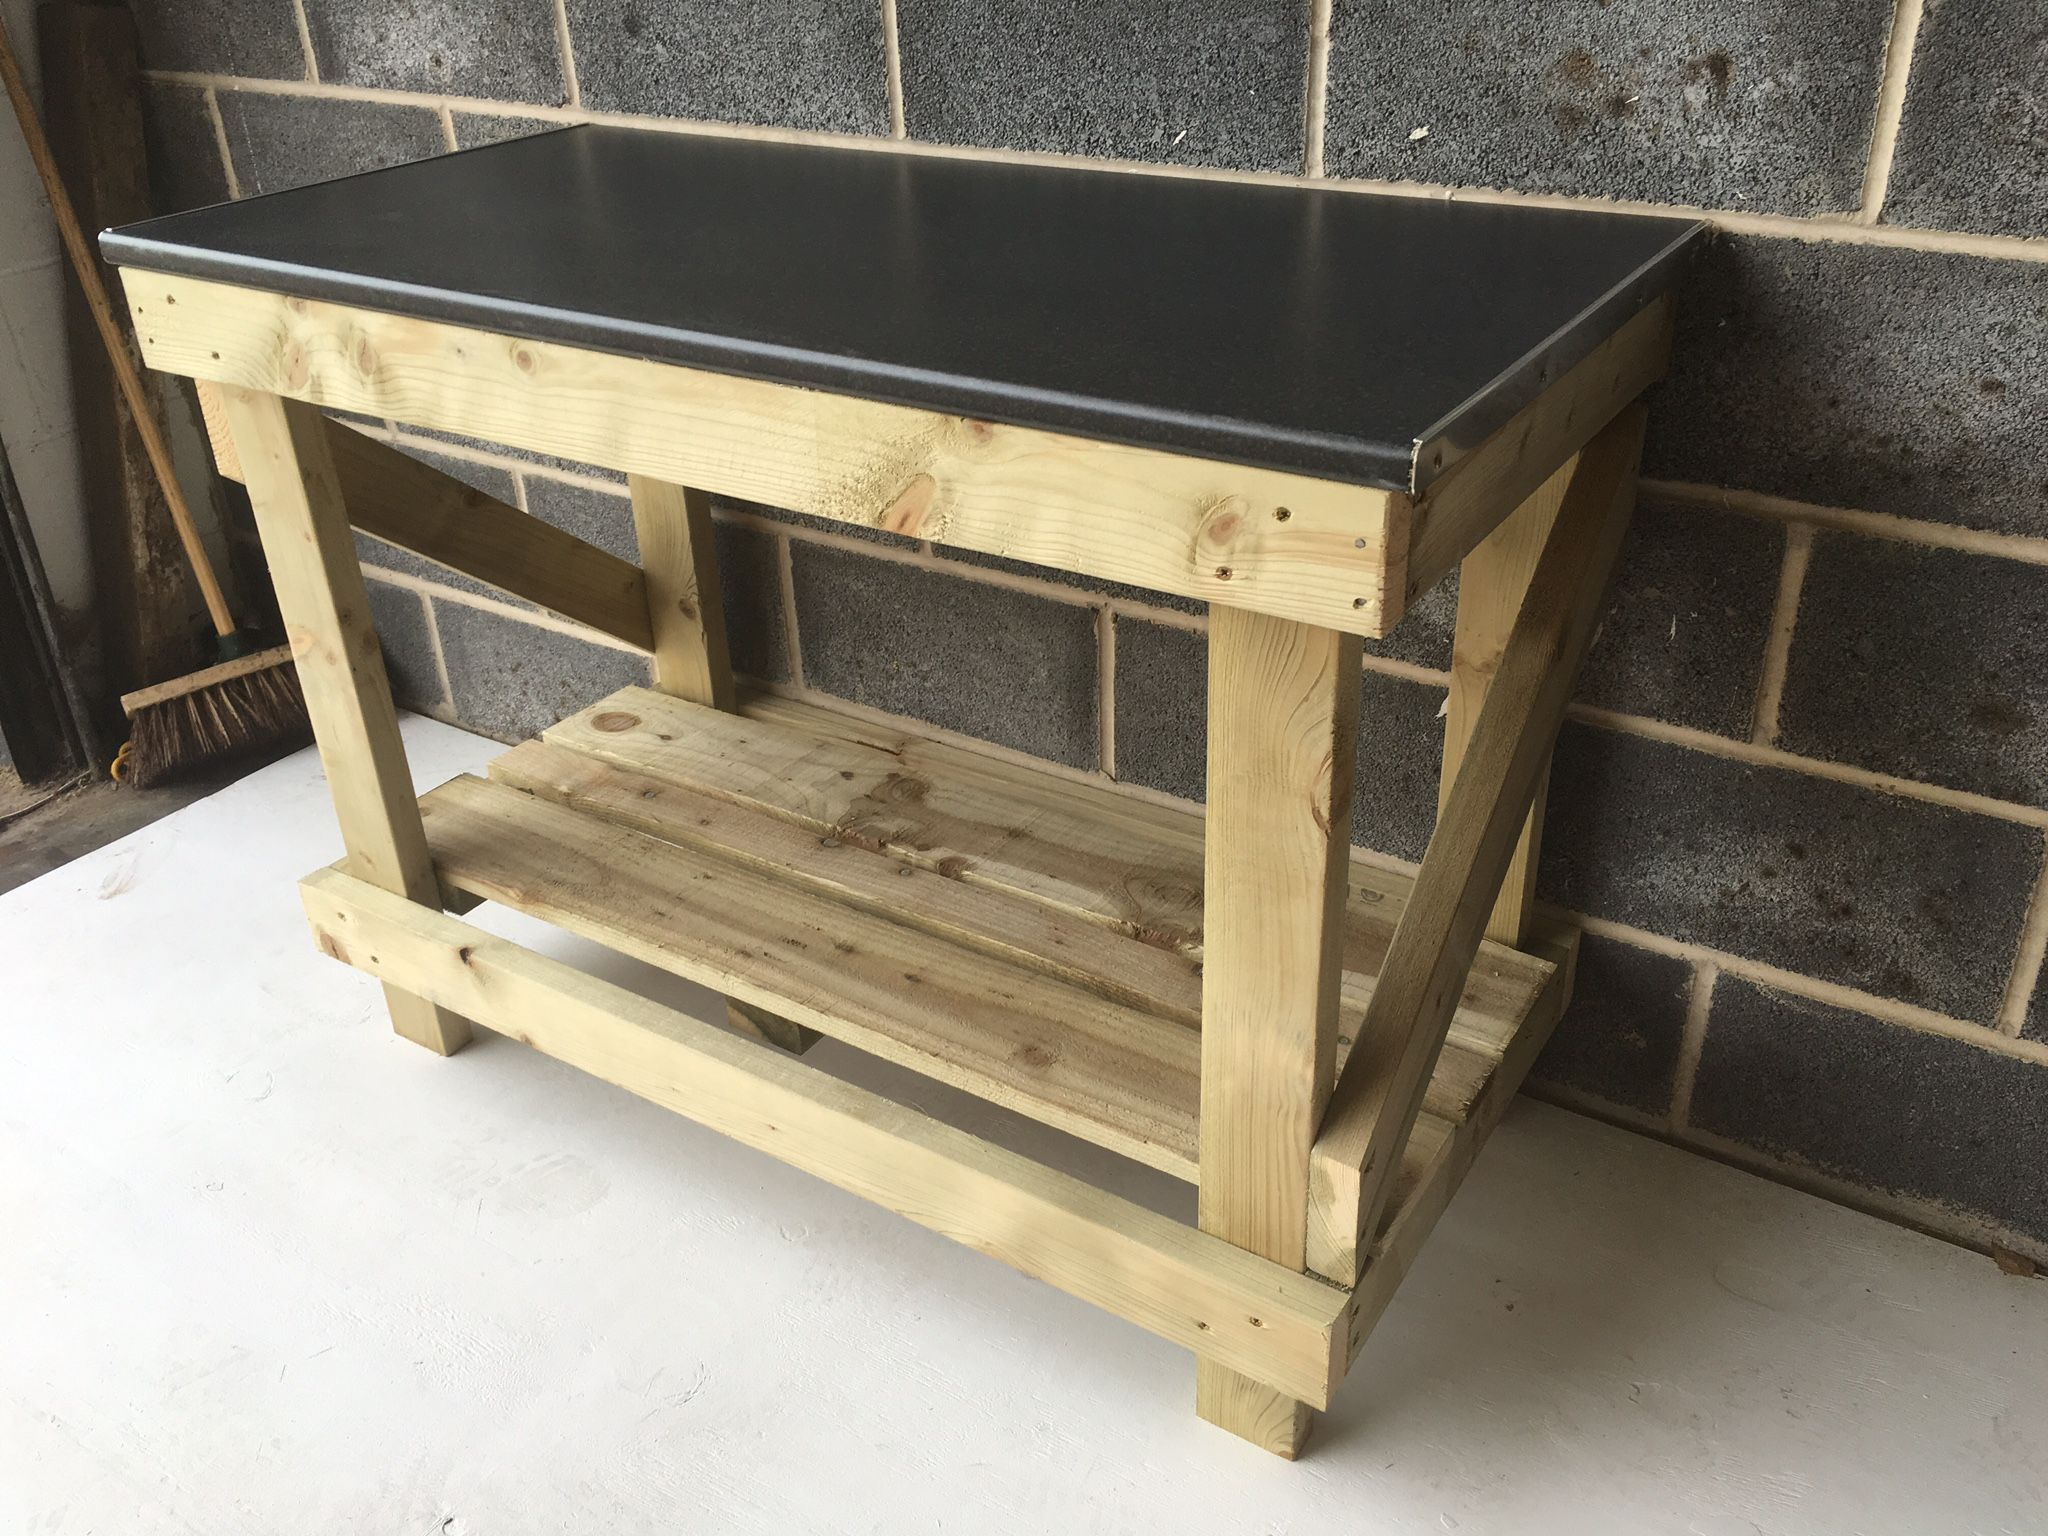 4ft Kitchen Worktop Style Heavy Duty Workbench For The